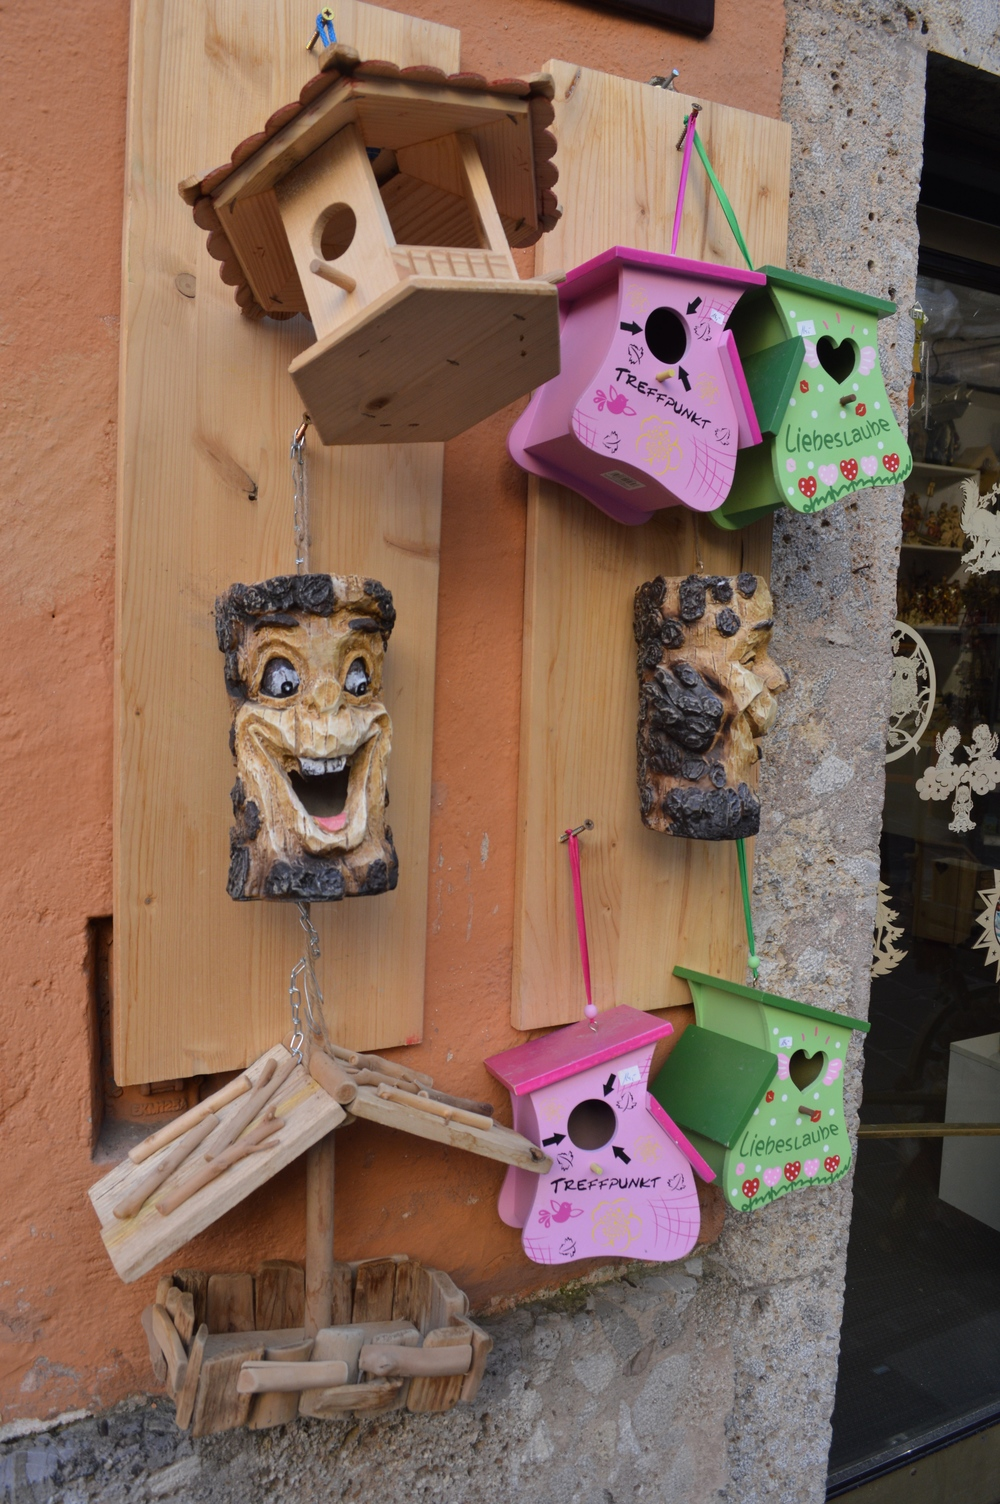 LaurenSchwaiger-Travel-Innsbruck-Austria-Wooden-Treehouse-Faces.jpg